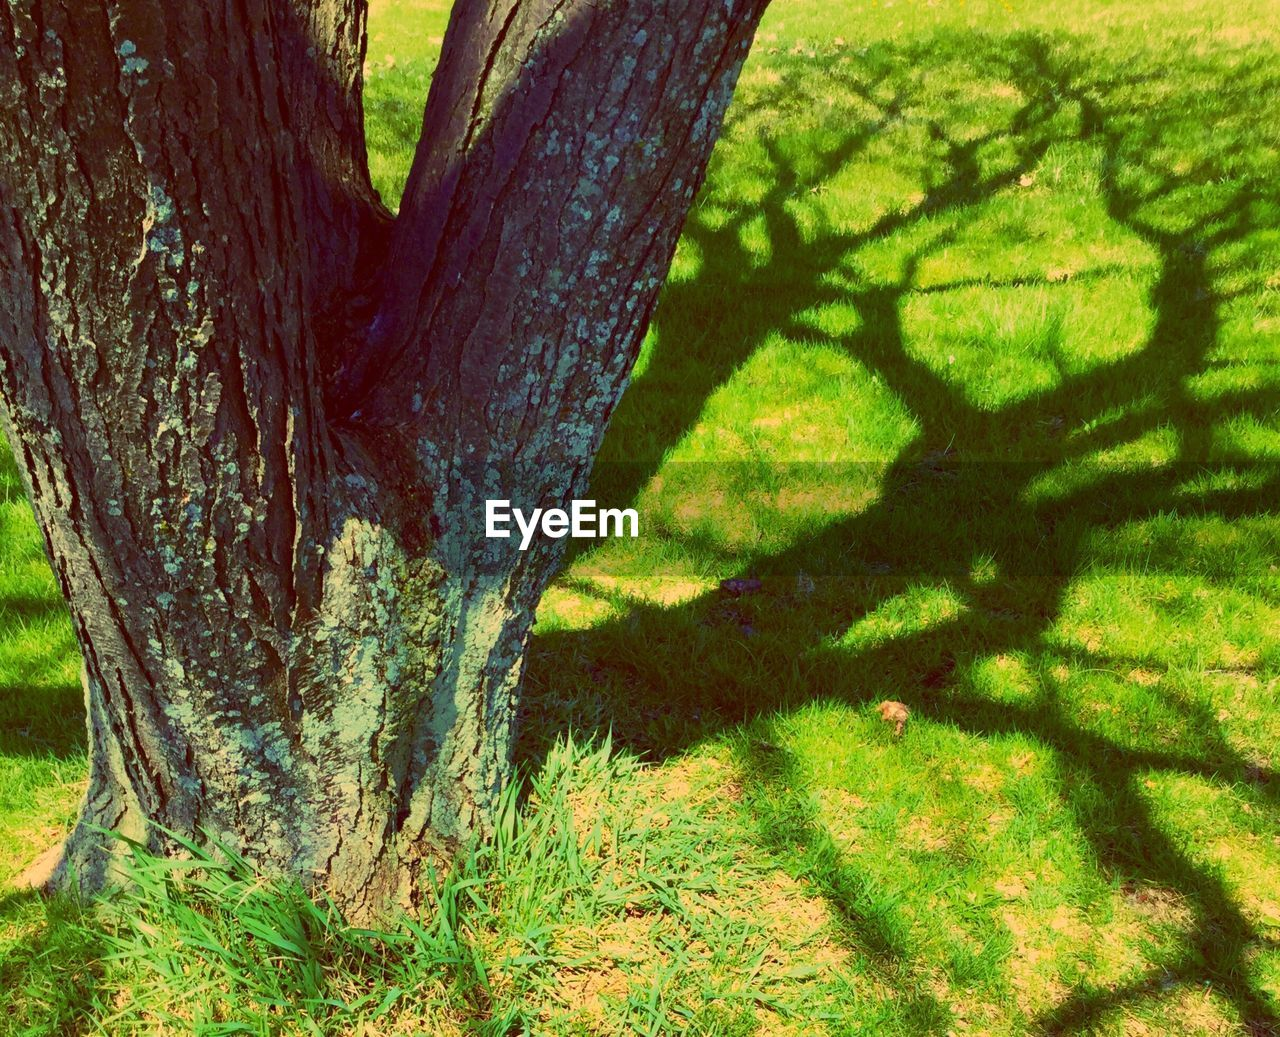 tree trunk, tree, day, environmental issues, nature, no people, outdoors, deforestation, growth, forest, grass, close-up